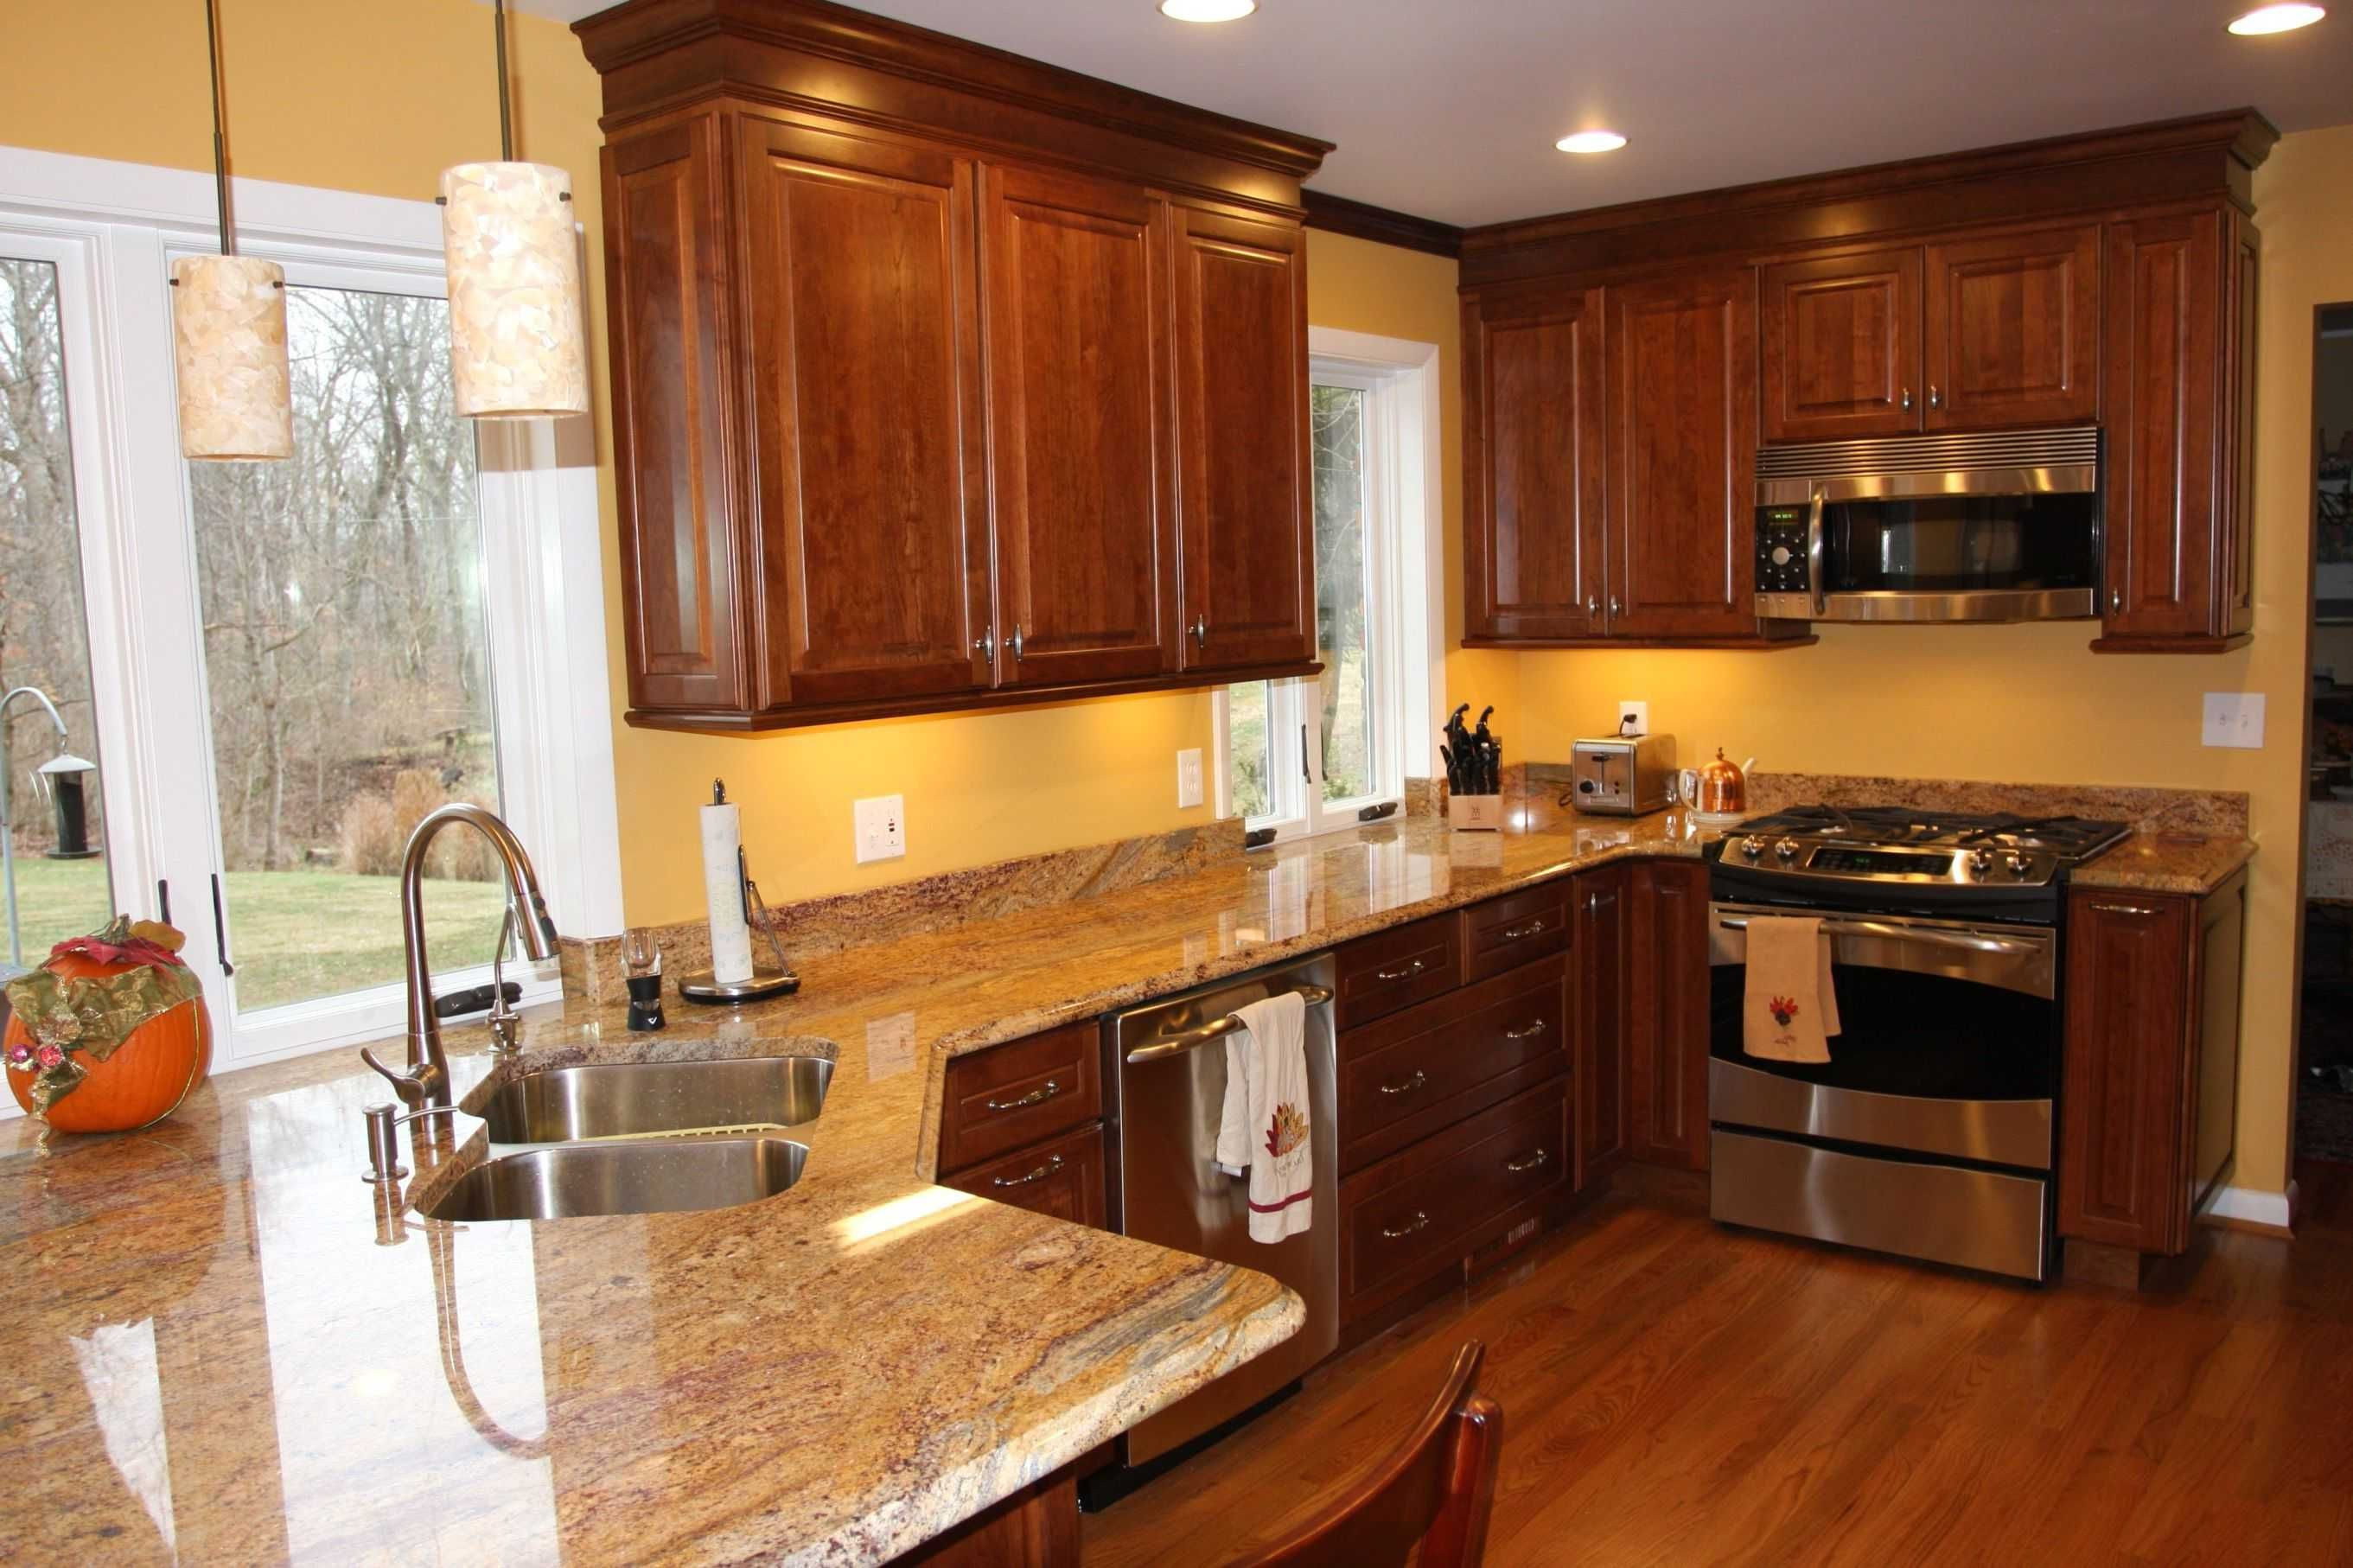 Inspire Us Has Inspirational List For Best Color For Kitchen Cabinets 2019 That Can Help You Create Y Kitchen Colors Kitchen Wall Colors Kitchen Colour Schemes